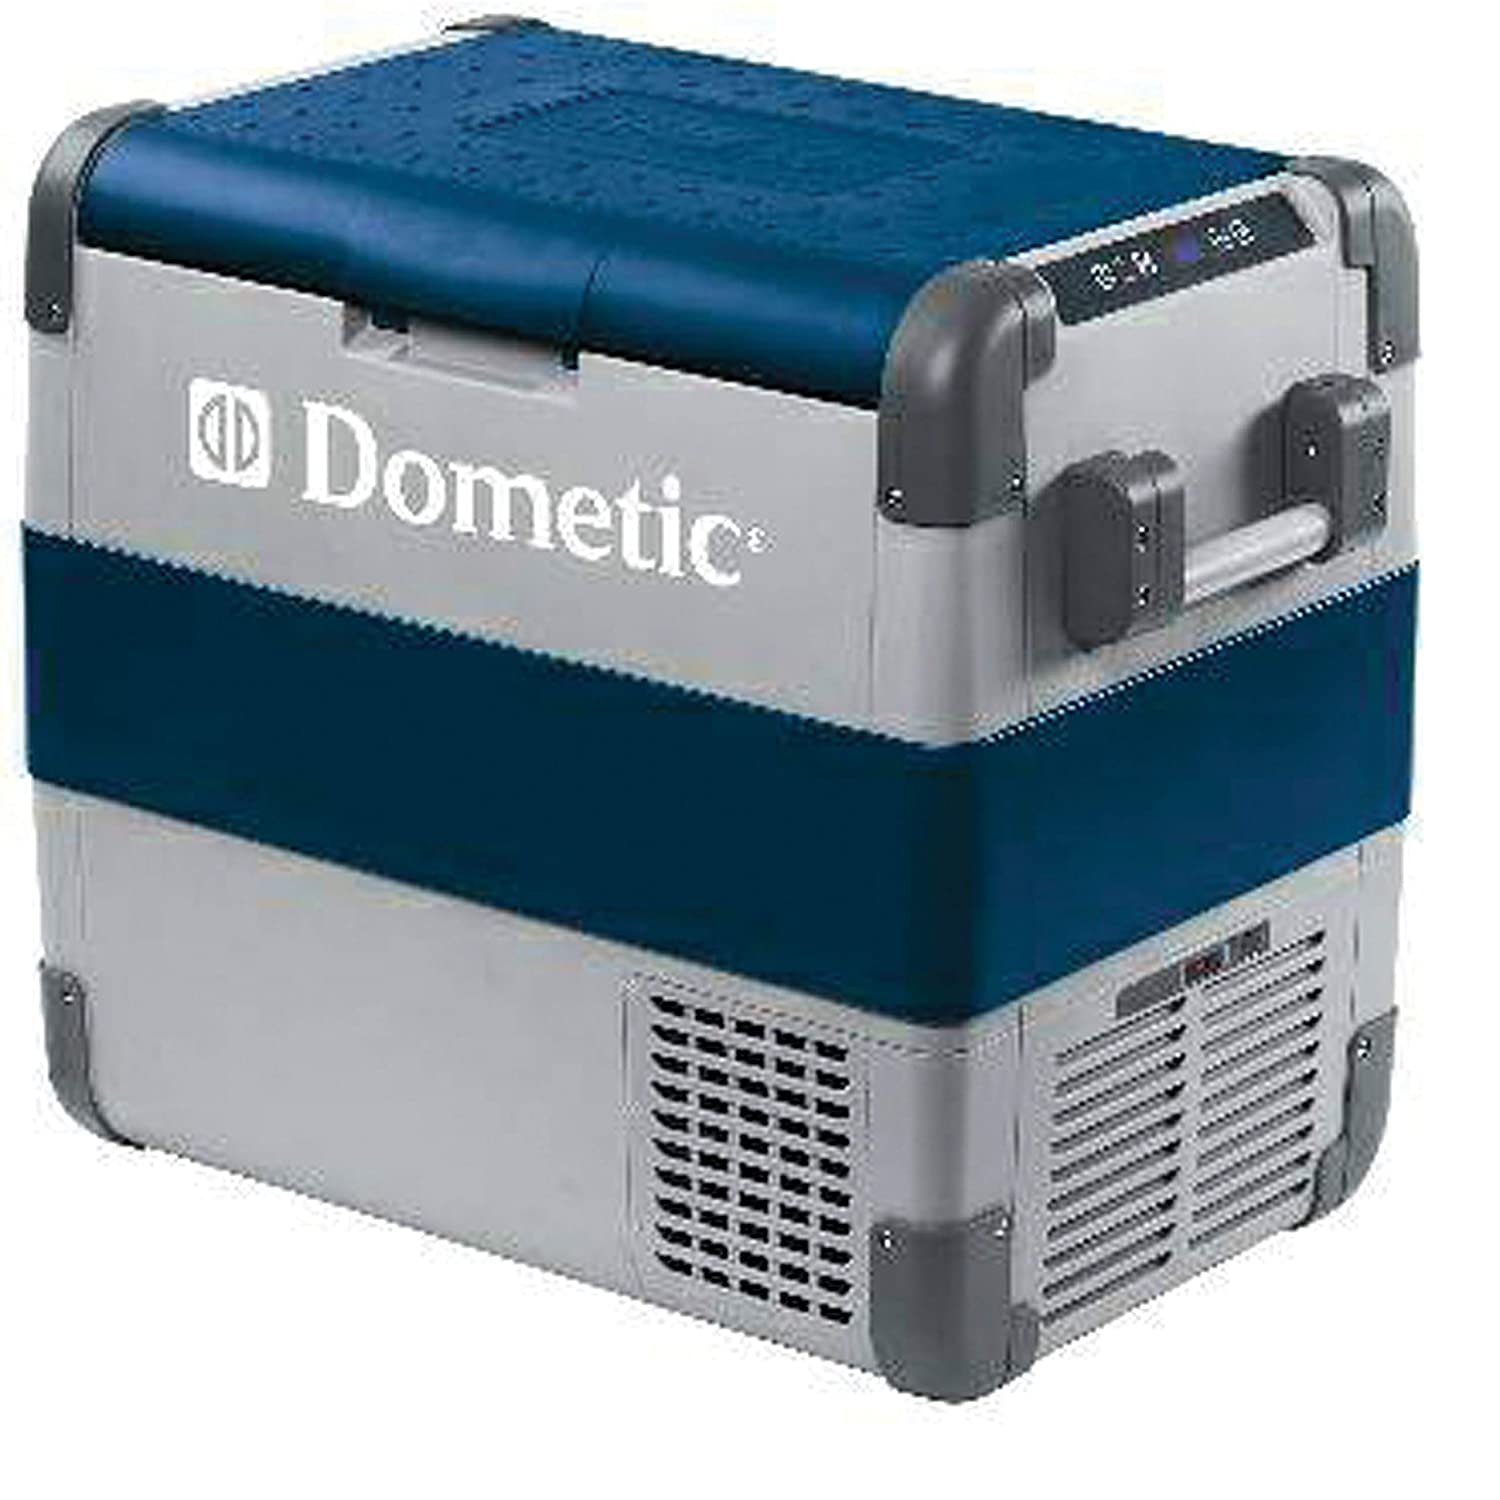 Dometic CFX-65DZ Portable Electric Cooler Refrigerator/Freezer Holds 106 cans, 2.2 cu. Ft. Capacity